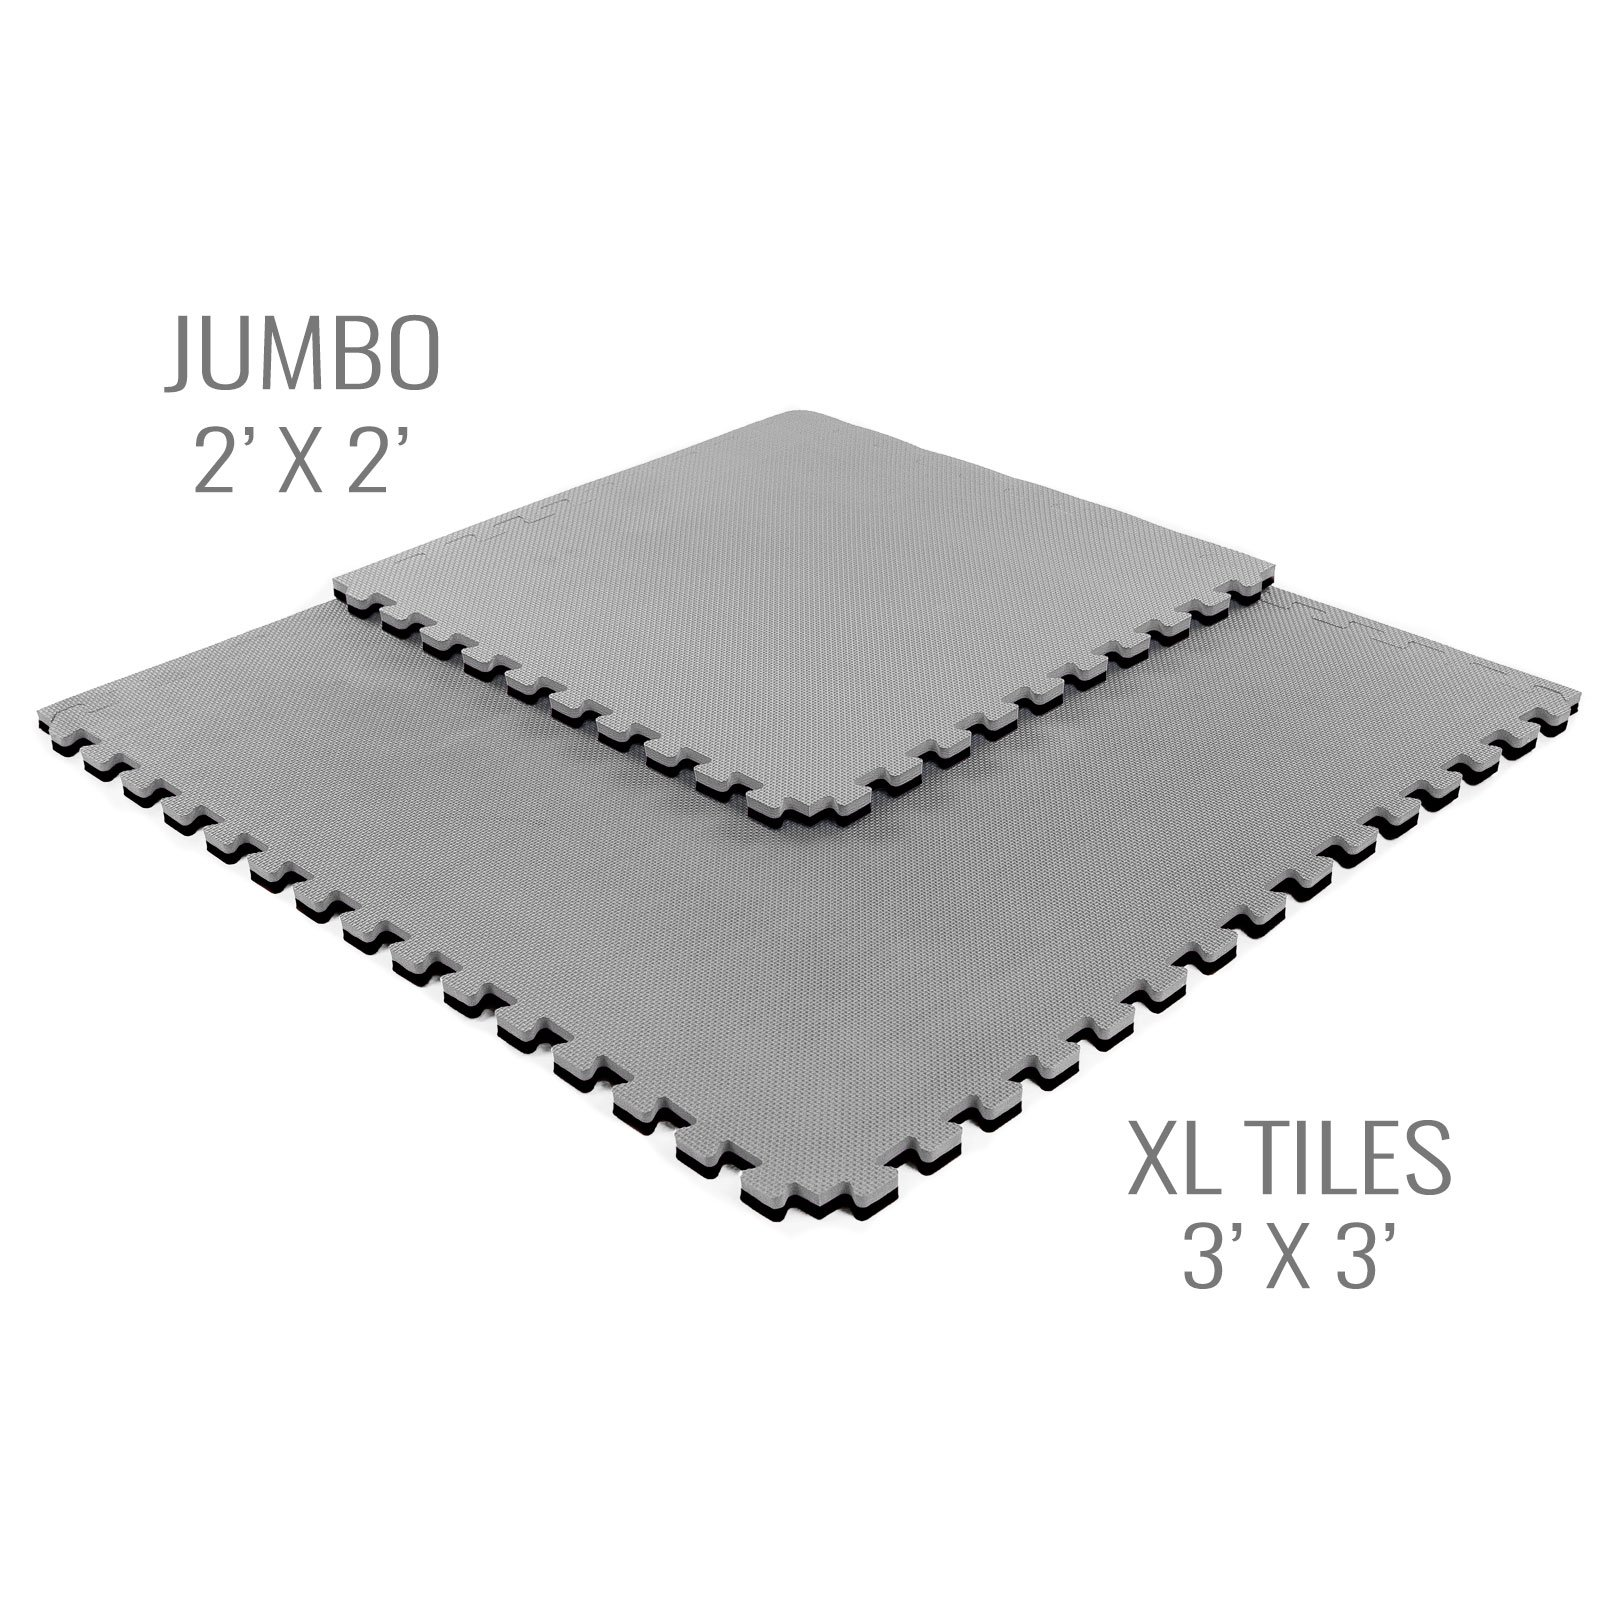 IncStores - Jumbo Soft Interlocking Foam Tiles (6 Tiles, Black/Grey) Perfect for Martial Arts, MMA, Lightweight Home Gyms, p90x, Gymnastics, Cardio, and Exercise by IncStores (Image #2)